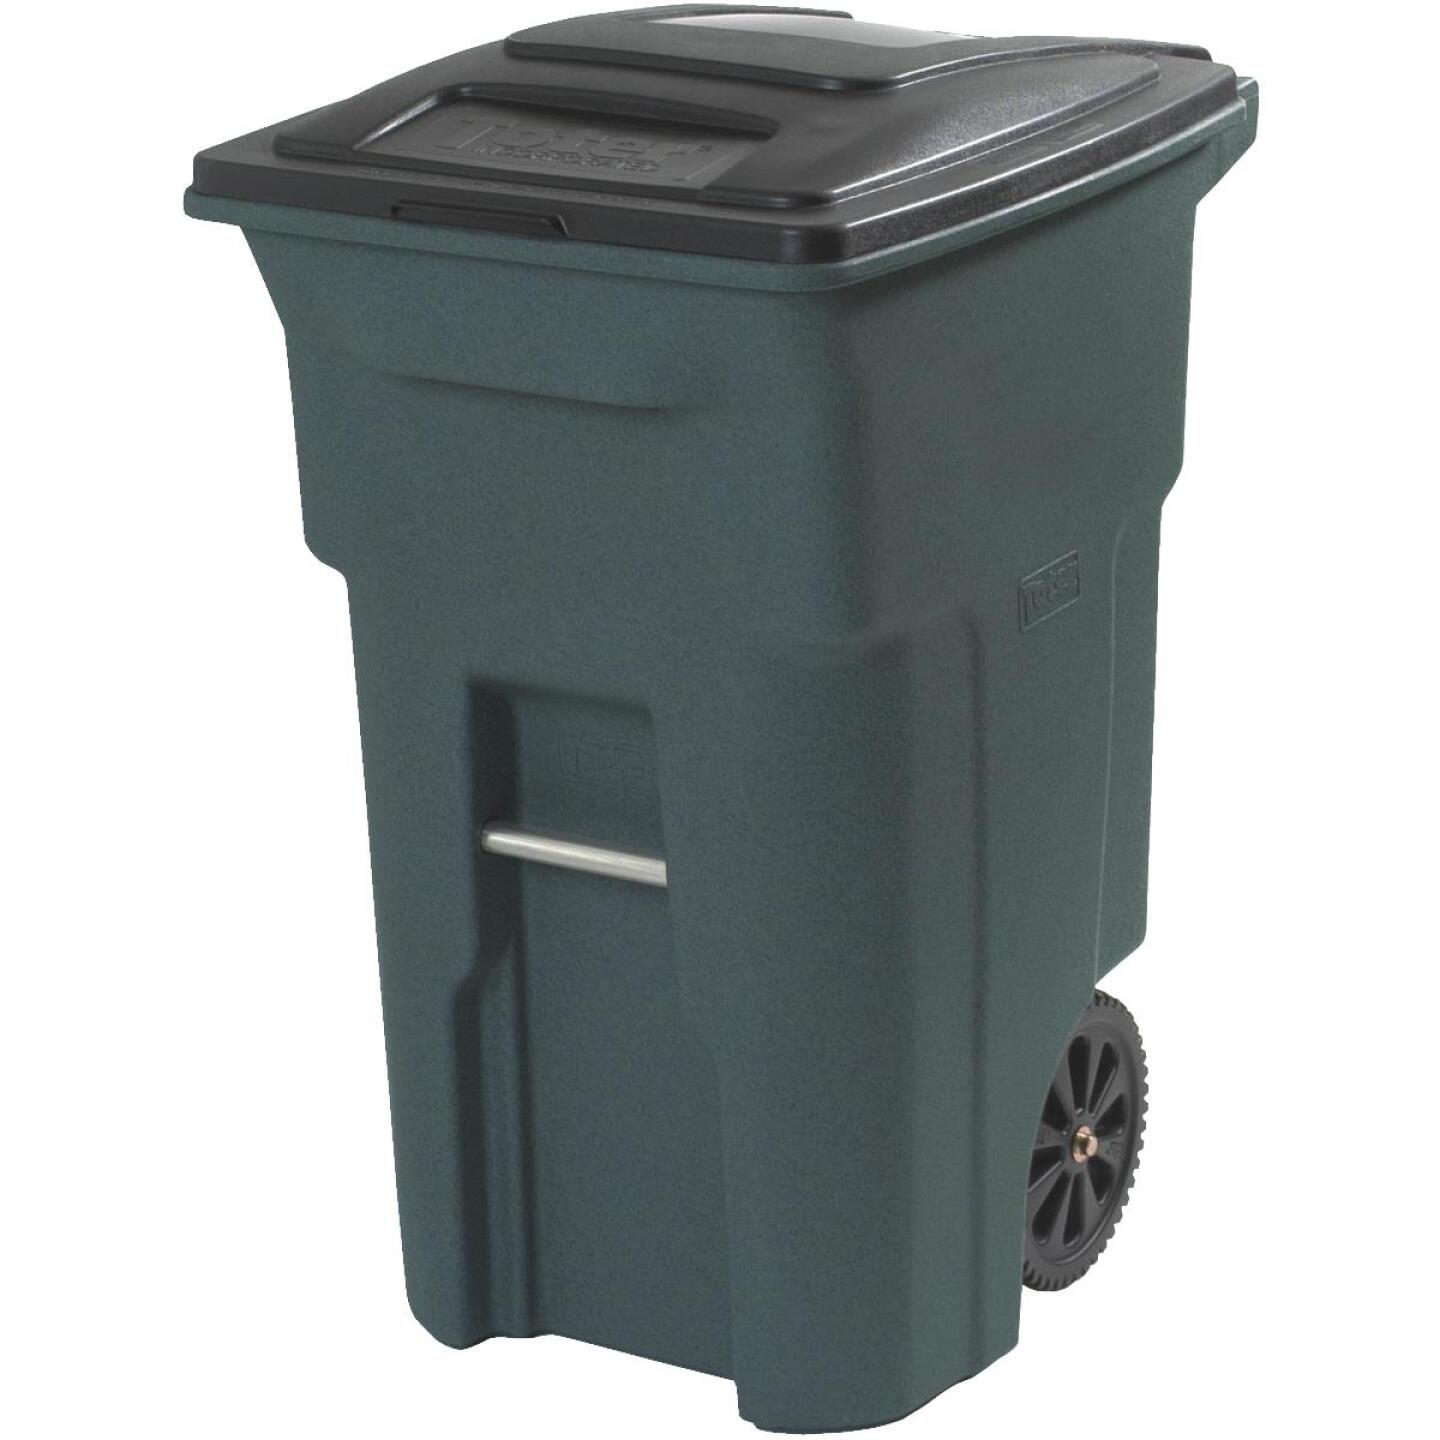 Toter 64 Gal. Commercial Trash Can Image 1